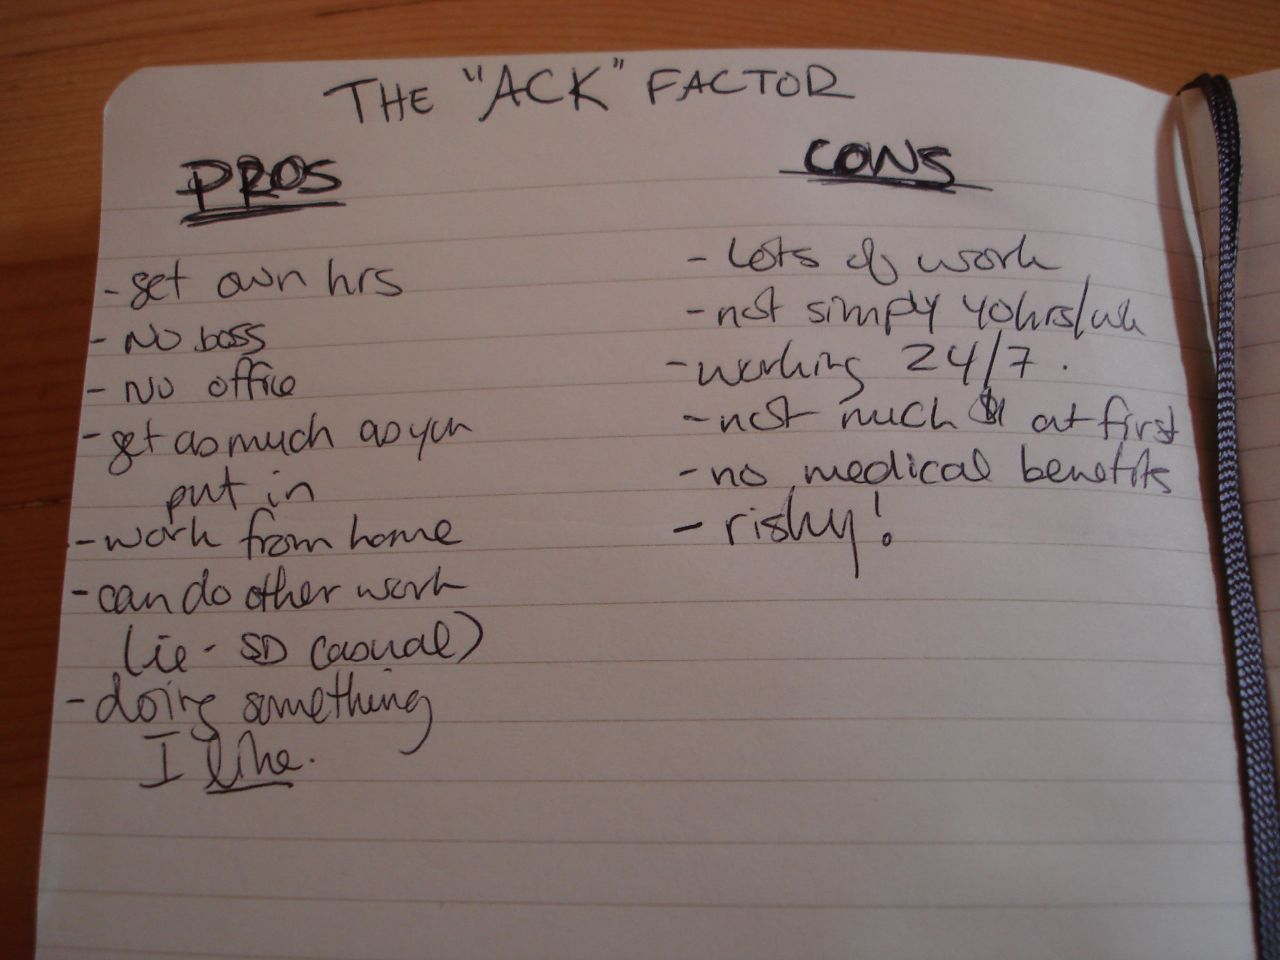 Photo of a pros and cons list for staying in a job